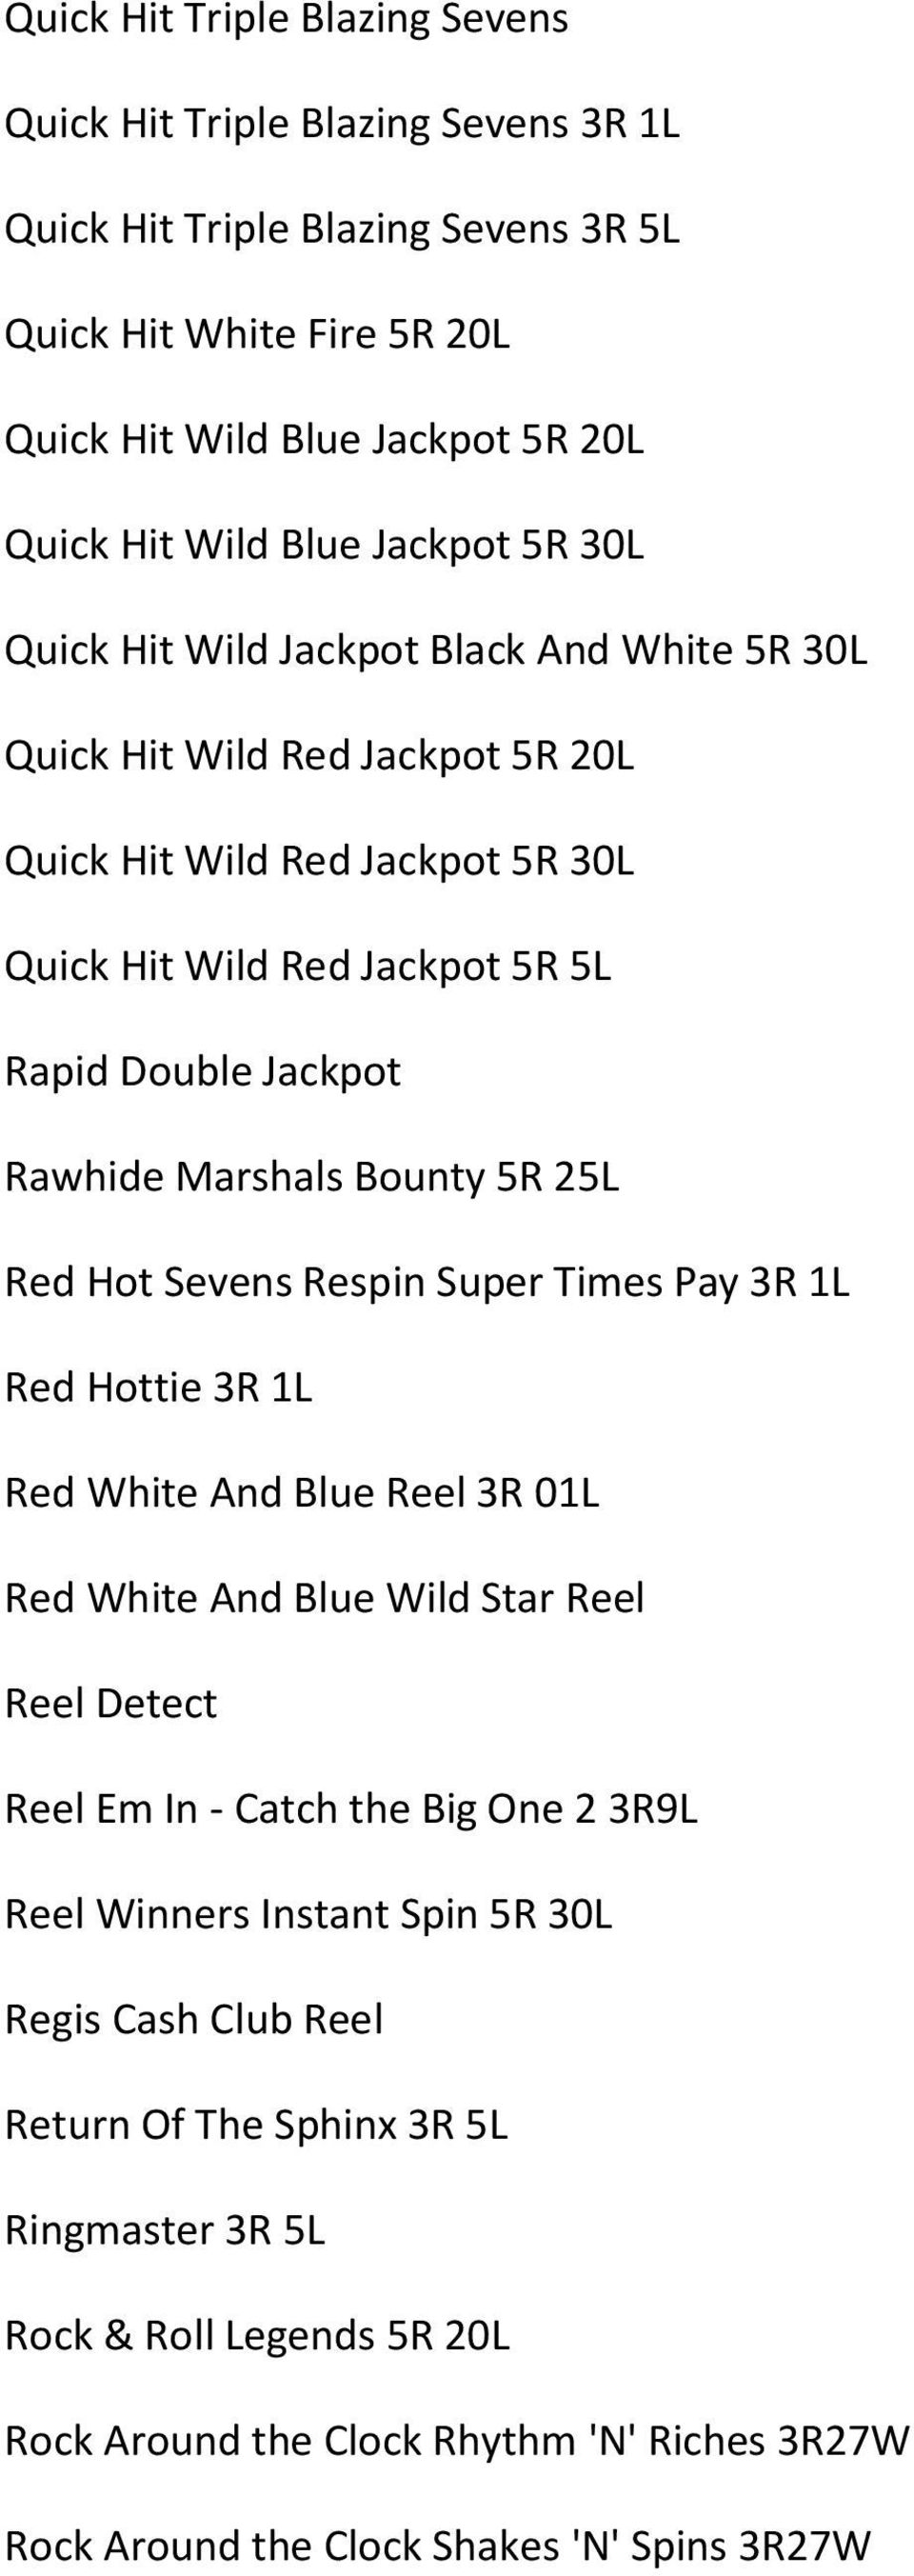 5R 25L Red Hot Sevens Respin Super Times Pay 3R 1L Red Hottie 3R 1L Red White And Blue Reel 3R 01L Red White And Blue Wild Star Reel Reel Detect Reel Em In - Catch the Big One 2 3R9L Reel Winners